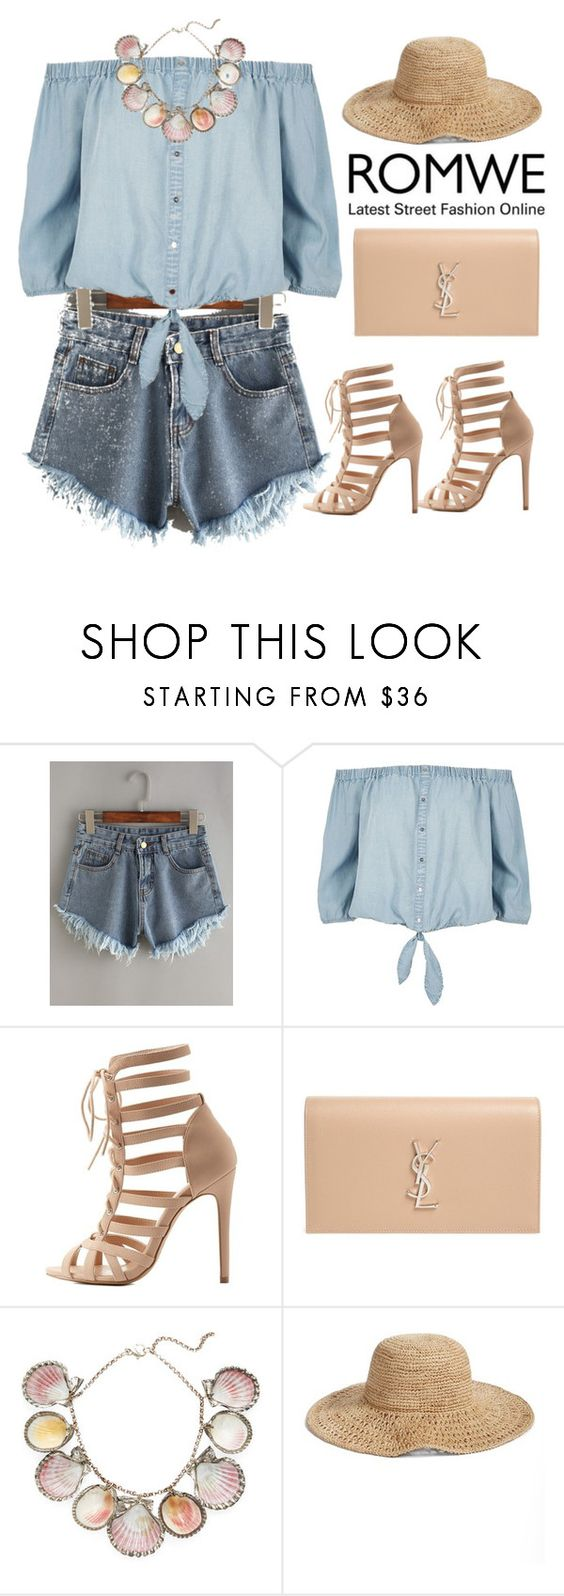 """""""Romwe contest"""" by hungry-unicorn ❤ liked on Polyvore featuring River Island, Charlotte Russe, Yves Saint Laurent, Paolo Costagli and Nordstrom"""